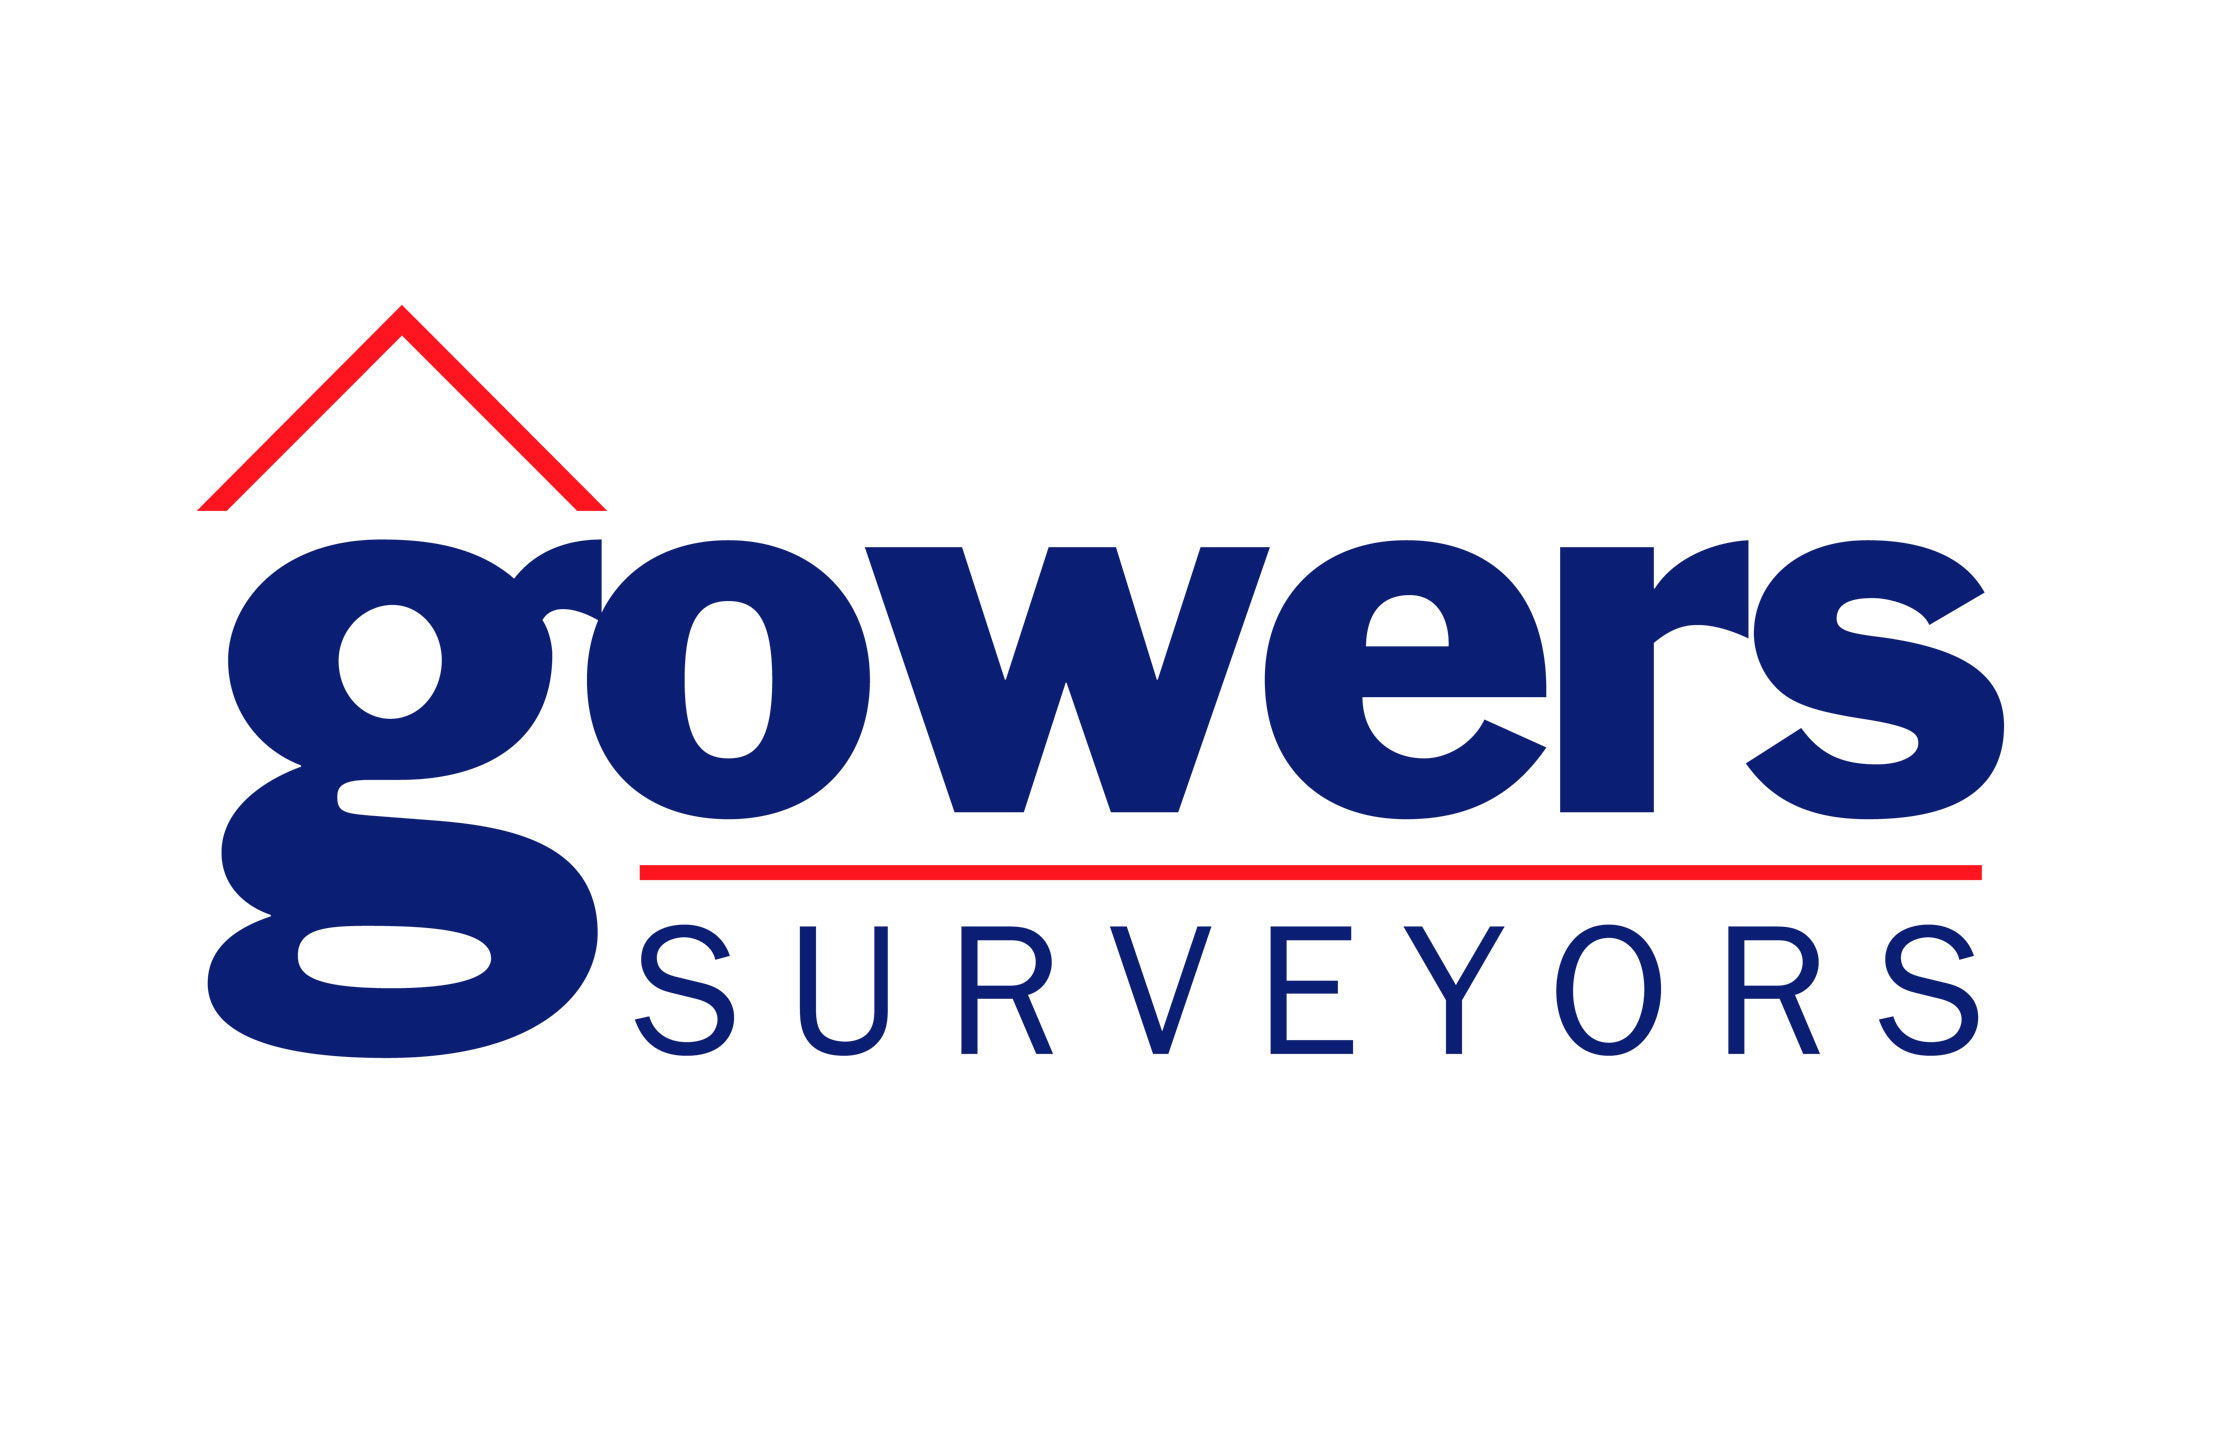 Design of Gowers Surveyors Corporate Logo